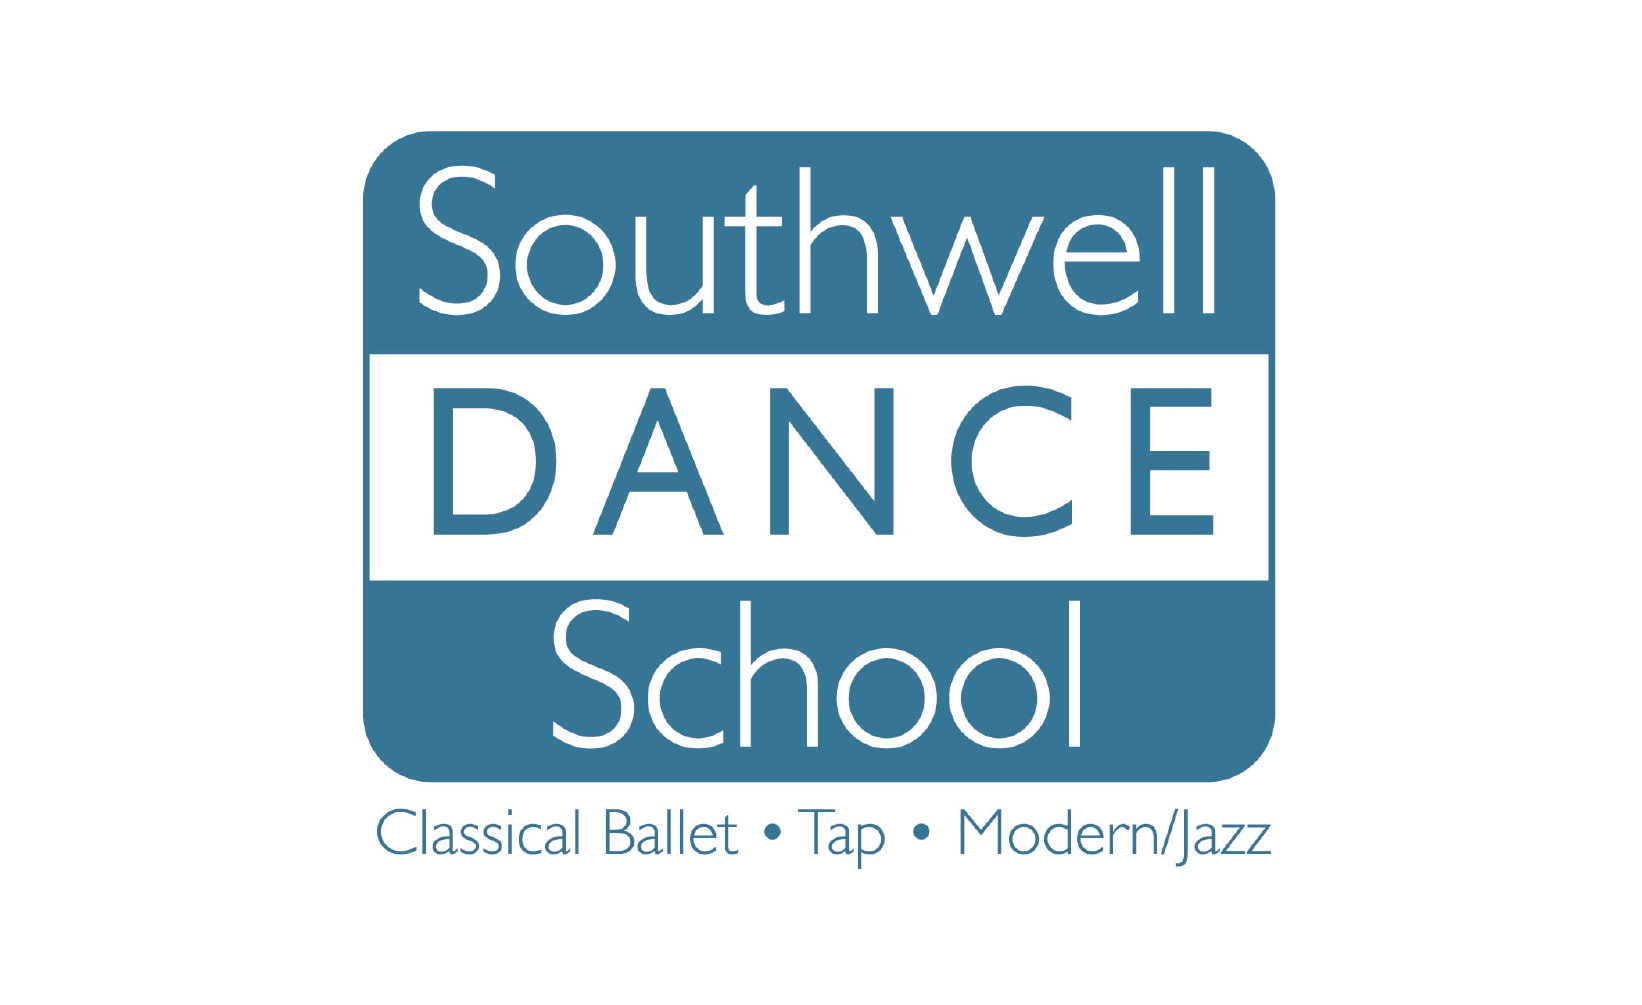 Dance school Customer Logos. ai-05.png